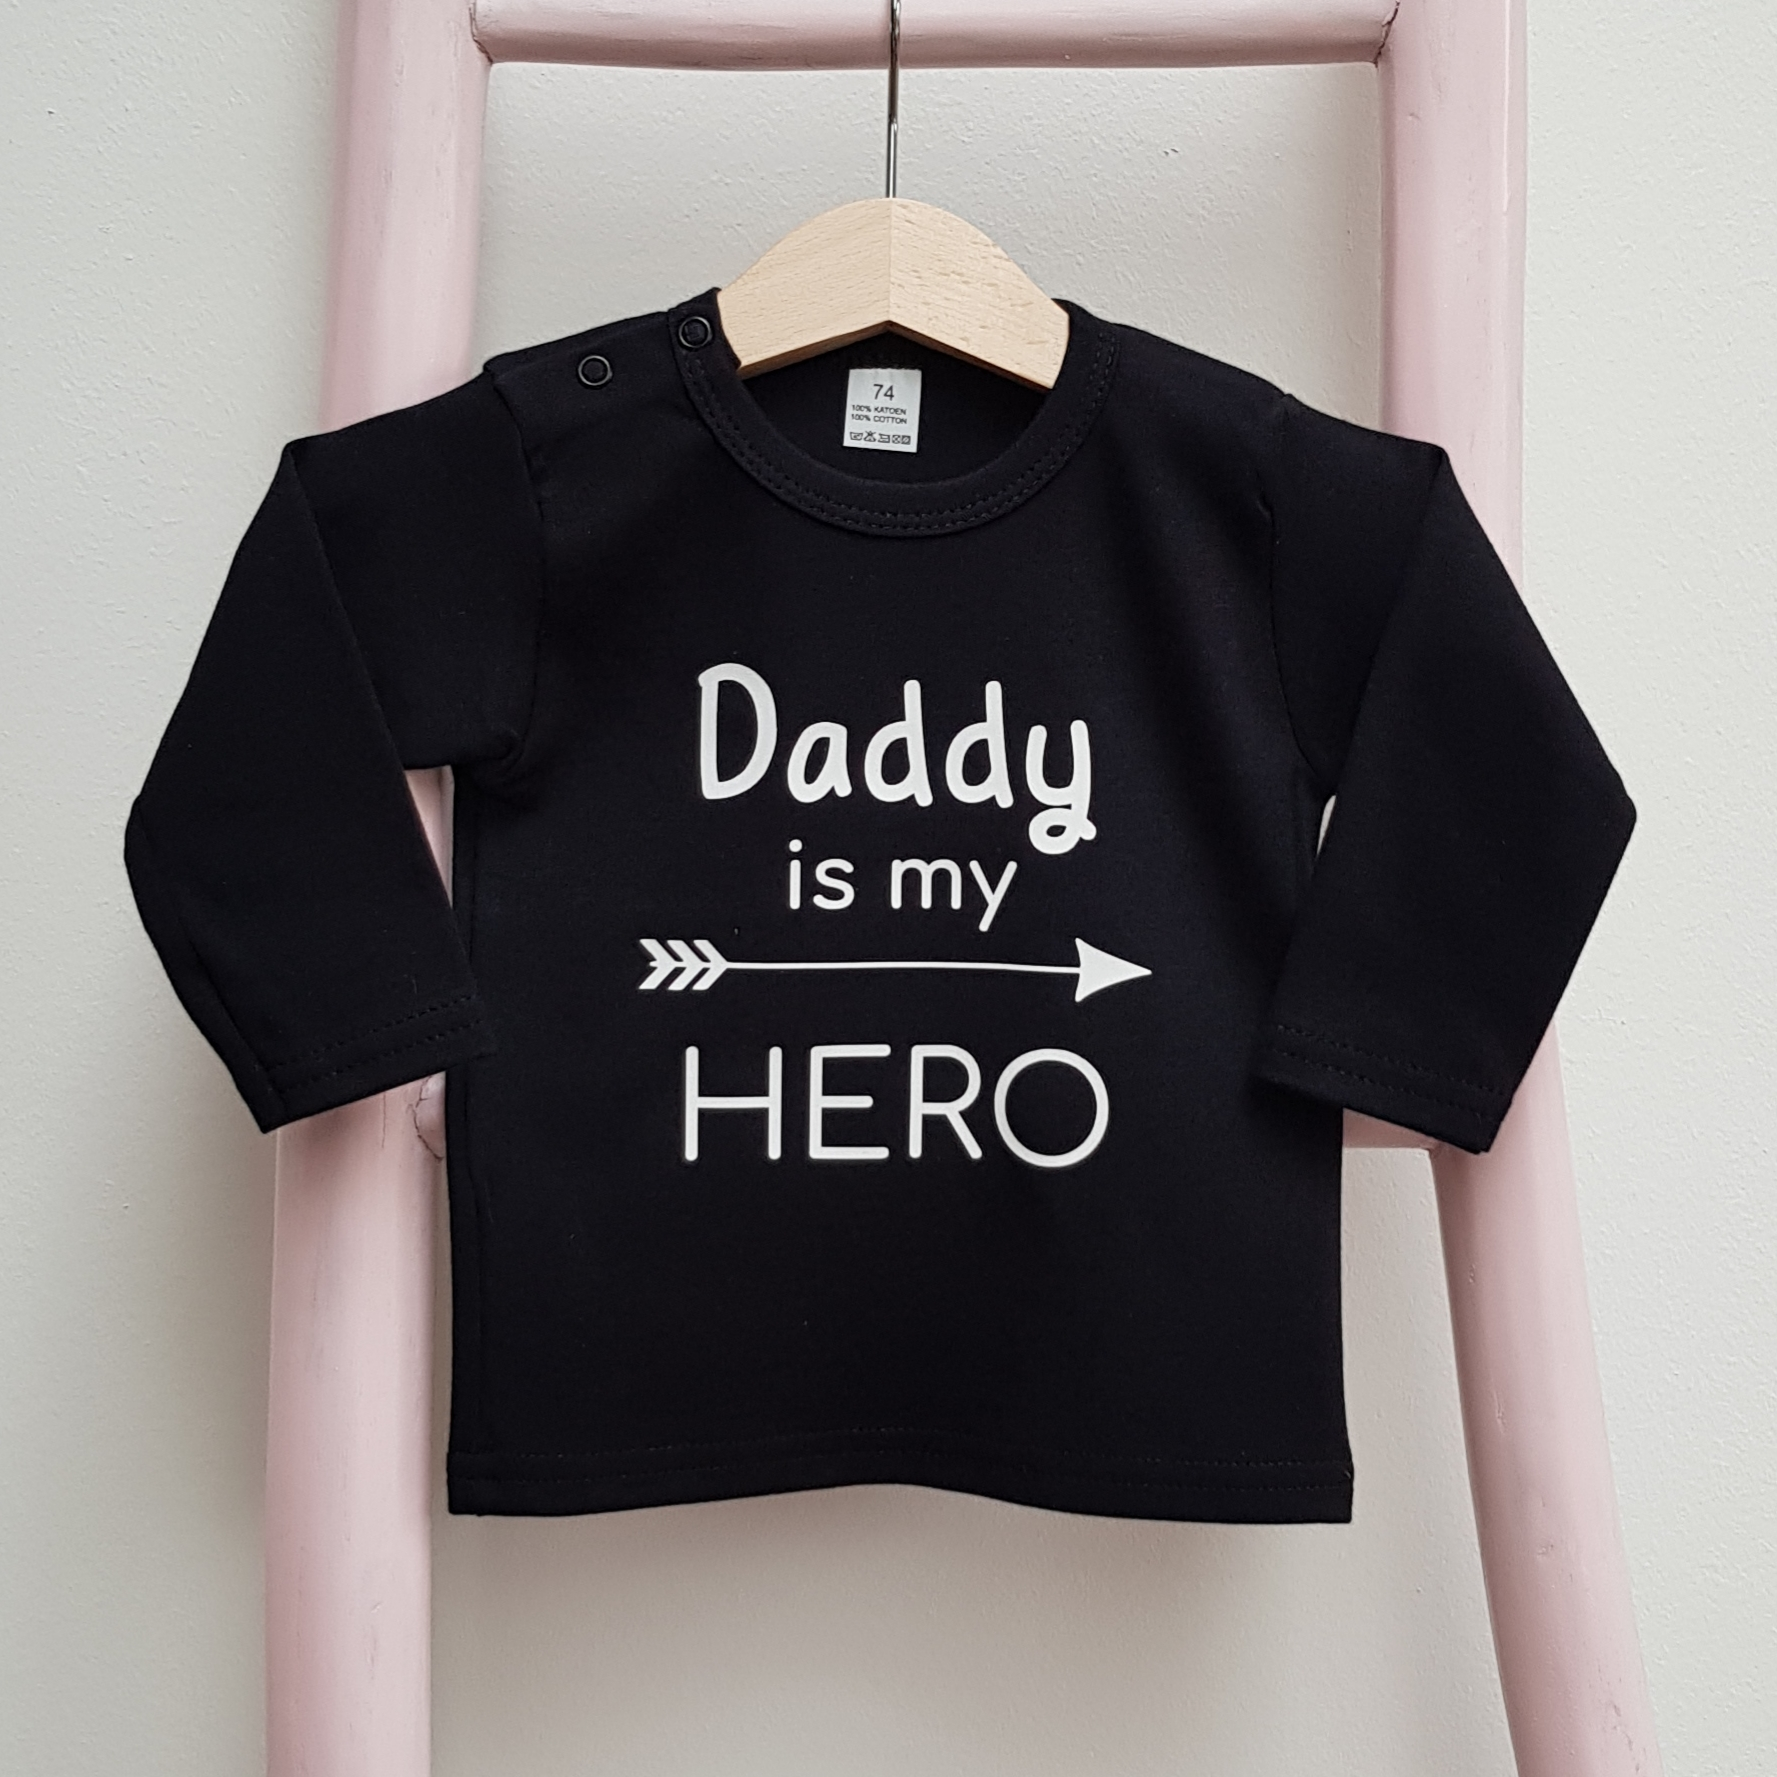 Tshirt zwart daddy is my hero lange mouw foto2 vaderdag